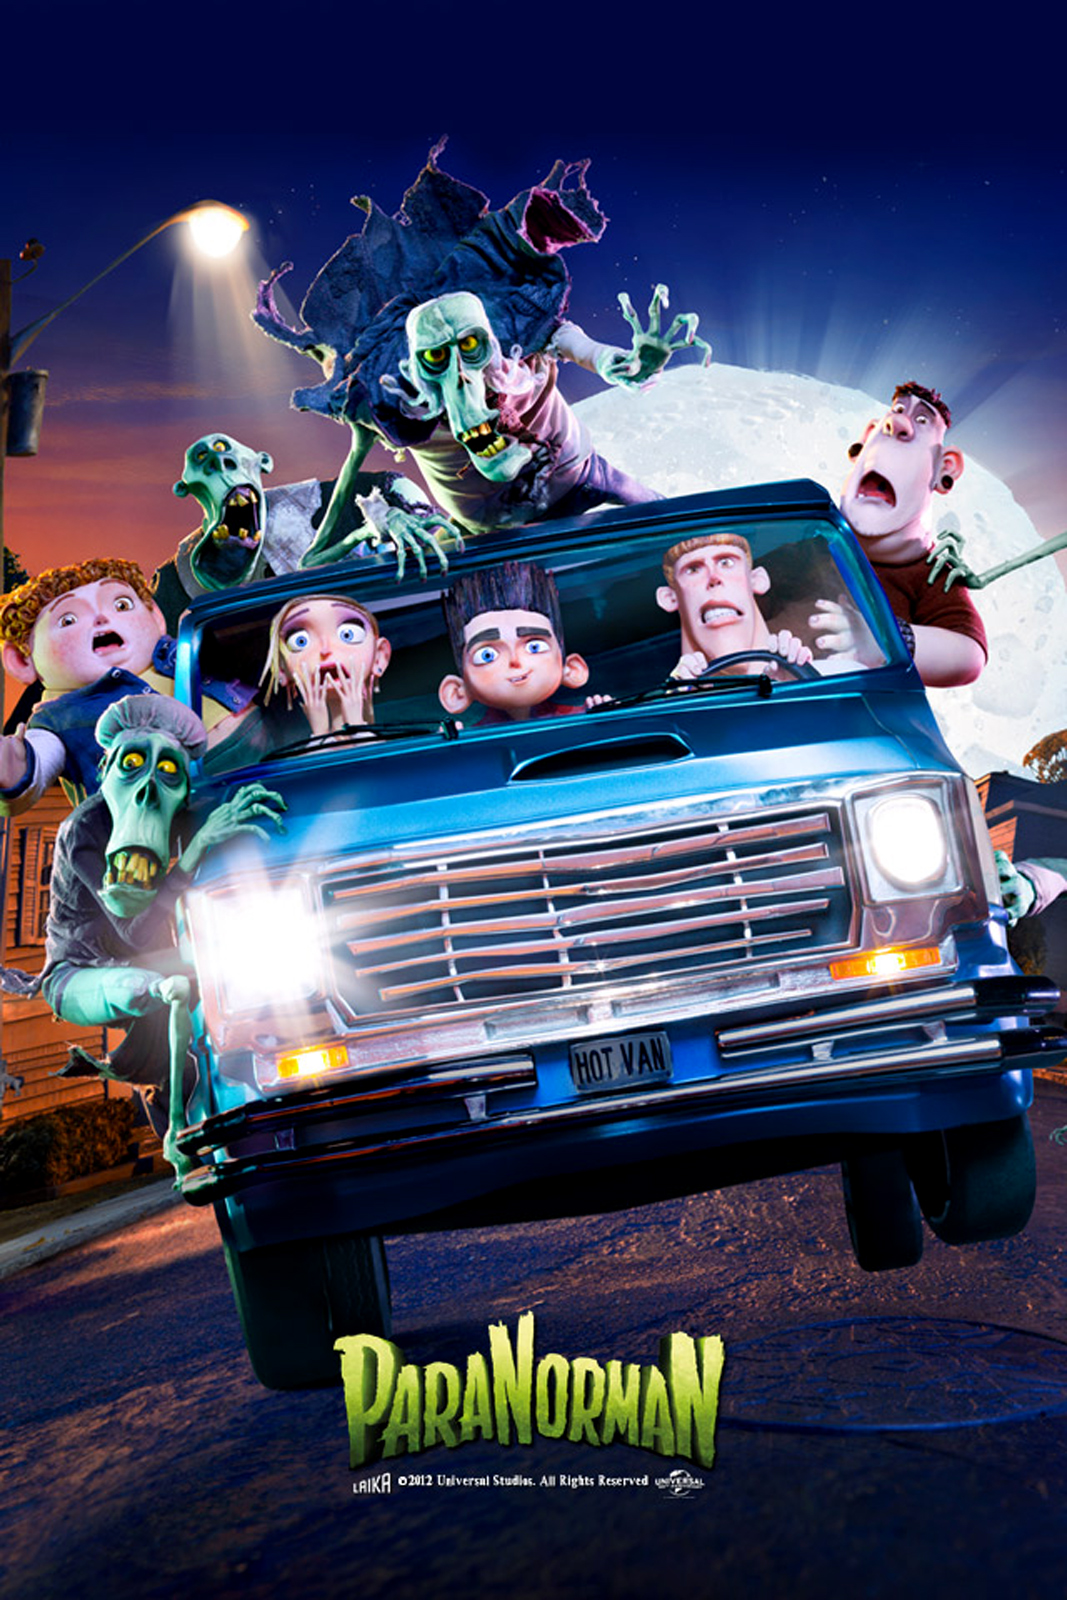 http://2.bp.blogspot.com/-jobB5UREkZw/UGae-Hgp4dI/AAAAAAAAE6g/NGKpwVmXzmM/s1600/Paranorman-Movie-Poster-Wallpaper-for-Smart-Phones--Vvallpaper.Net.jpg